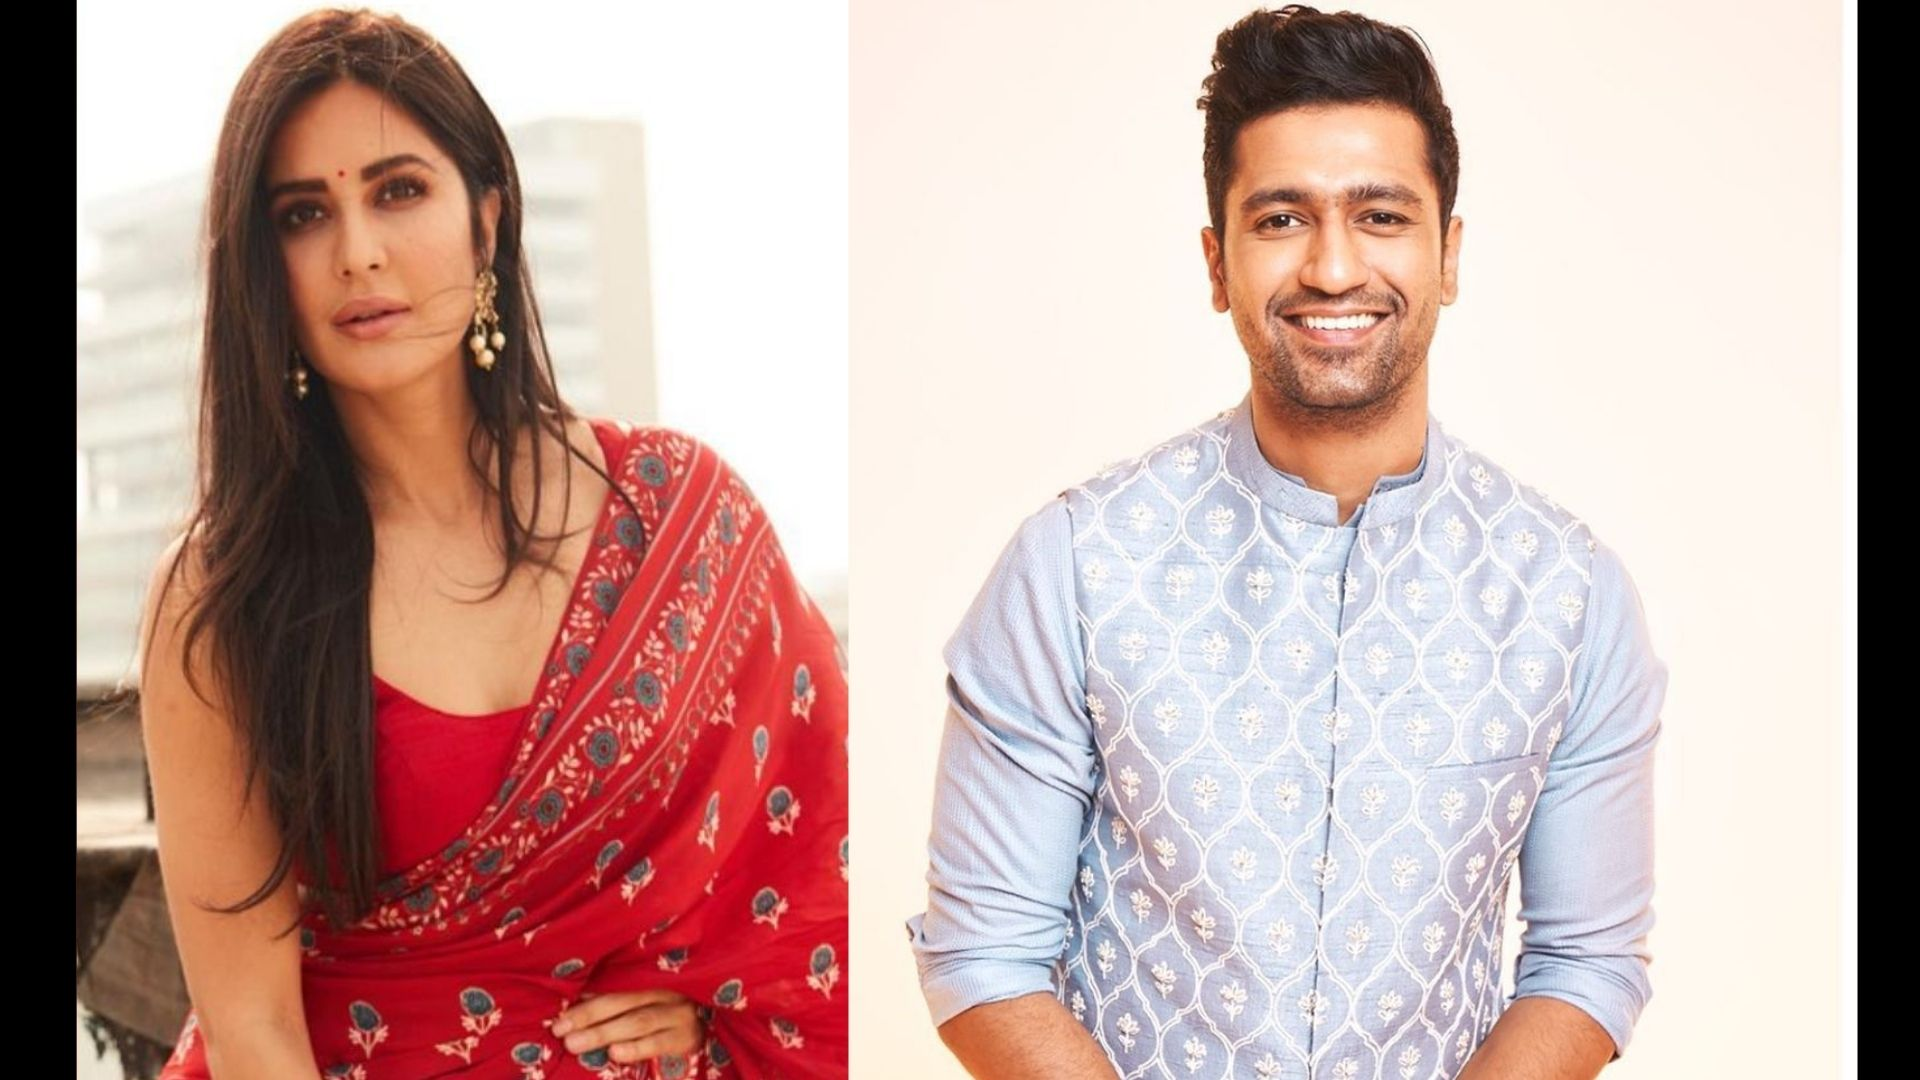 Katrina Kaif-Vicky Kaushal Wedding: Date And Venue Out; Couple To Tie The Knot At This Dreamy Location